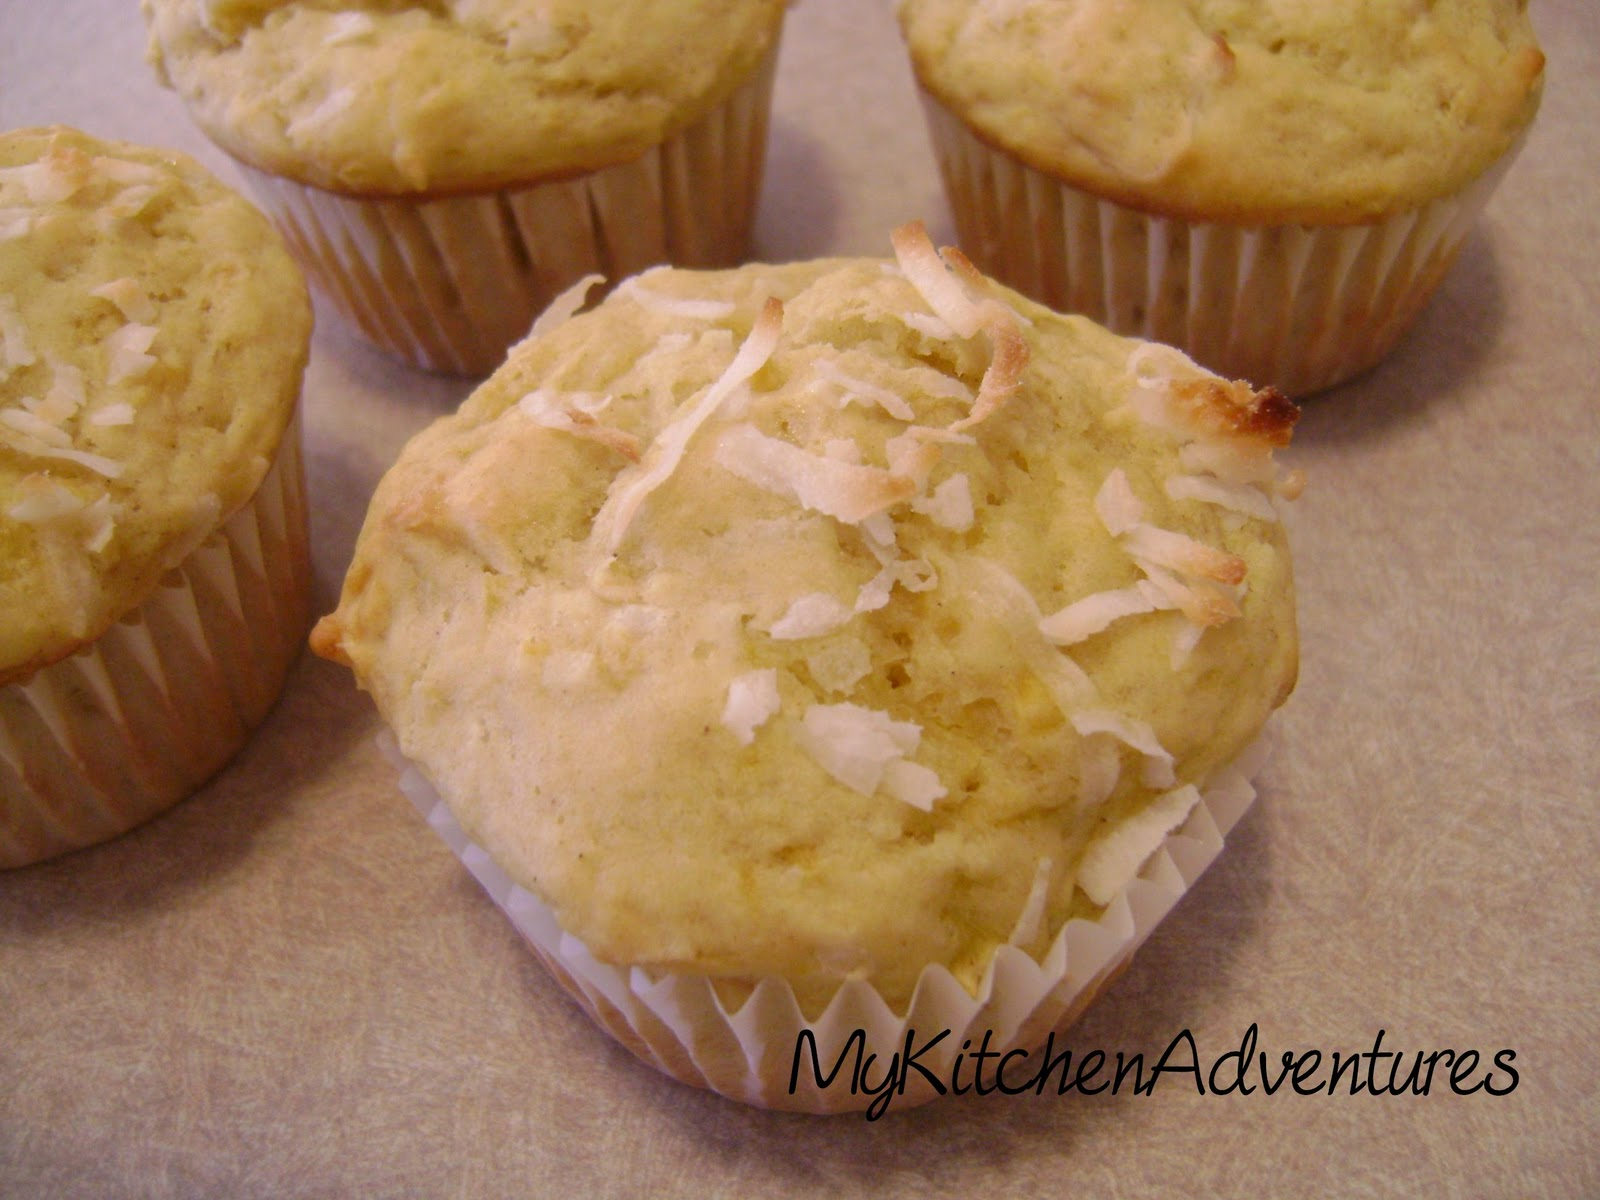 ... are soft and sweet. They make a great addition to this muffin recipe